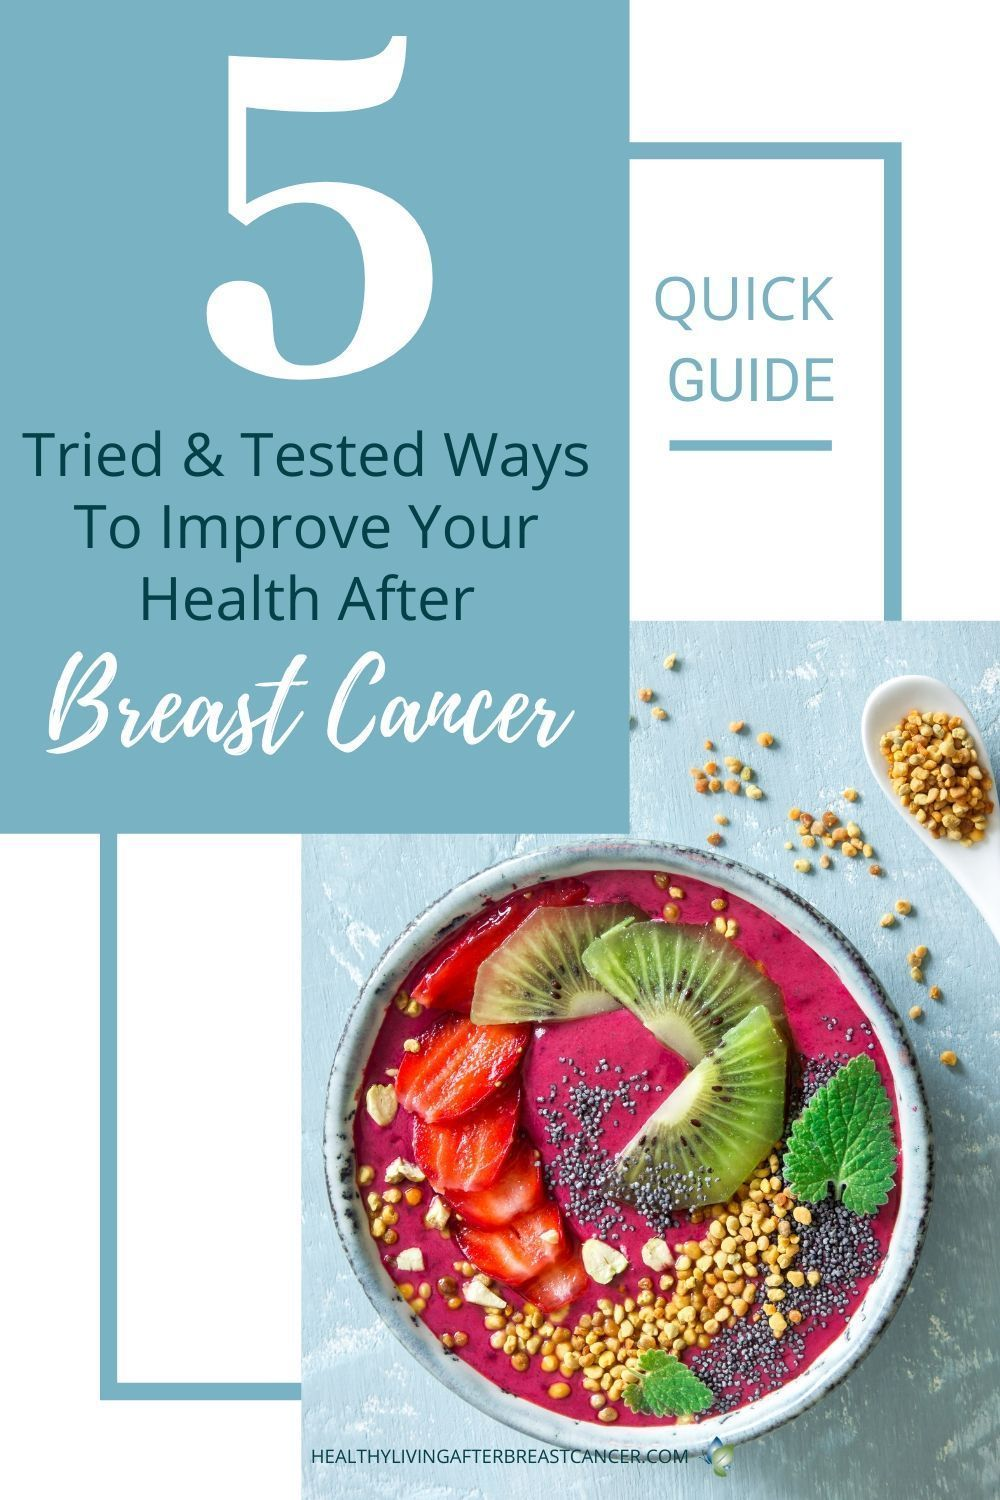 5 Tried & Tested Ways To Improve Your Health After Breast Cancer #healthyliving #breastcancer #lifeafterchemo #cancersurvivor #treatment #Healthyliving #healthylifestyle #lifeafterbreastcancer #cancercommunity #health